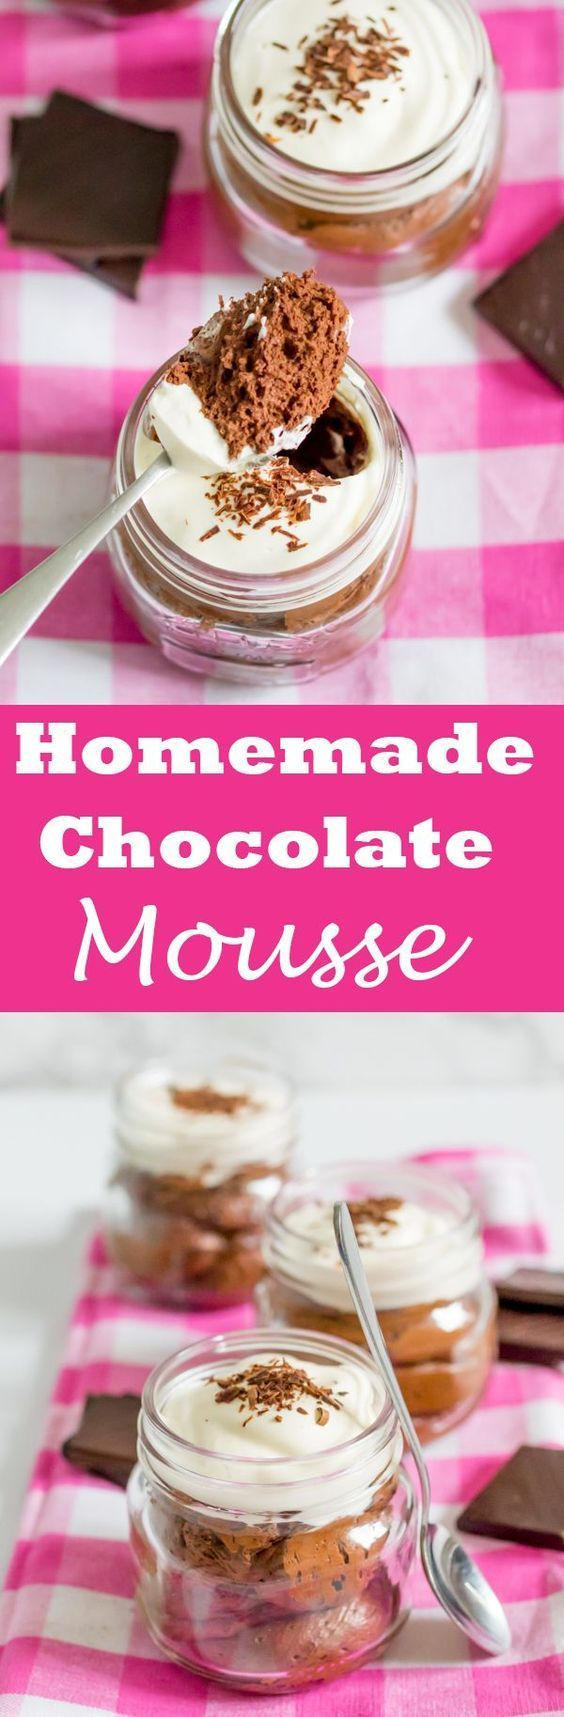 Chocolate Mousse | A rich and luxurious chocolate mousse, topped with whipped cream and chocolate shavings. - -